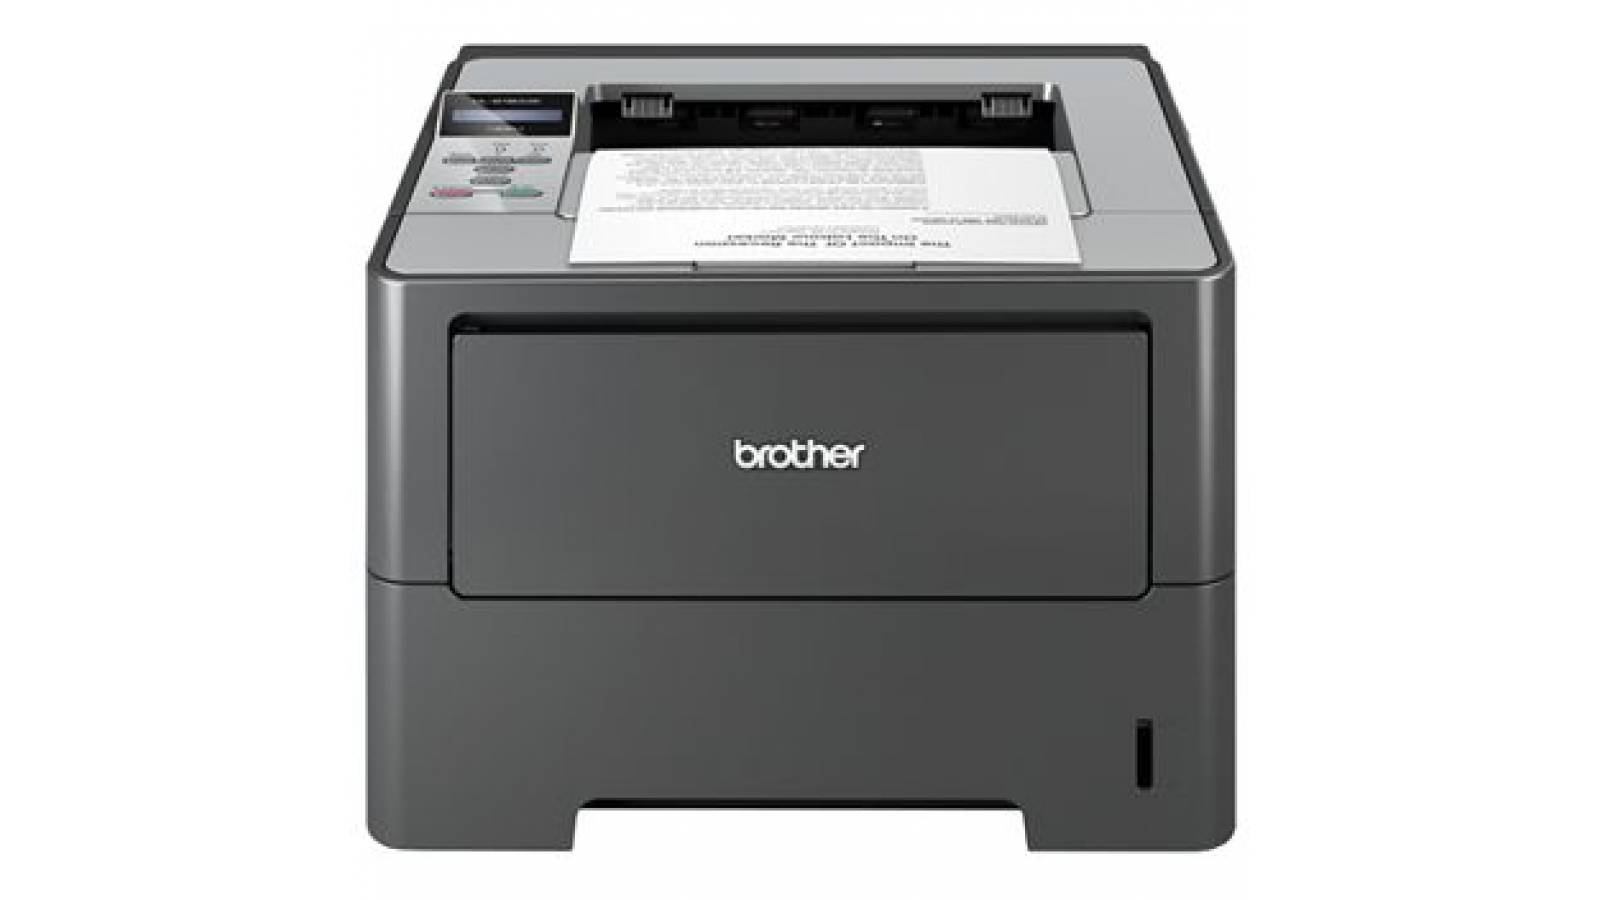 Impresora Brother HL-5470DW